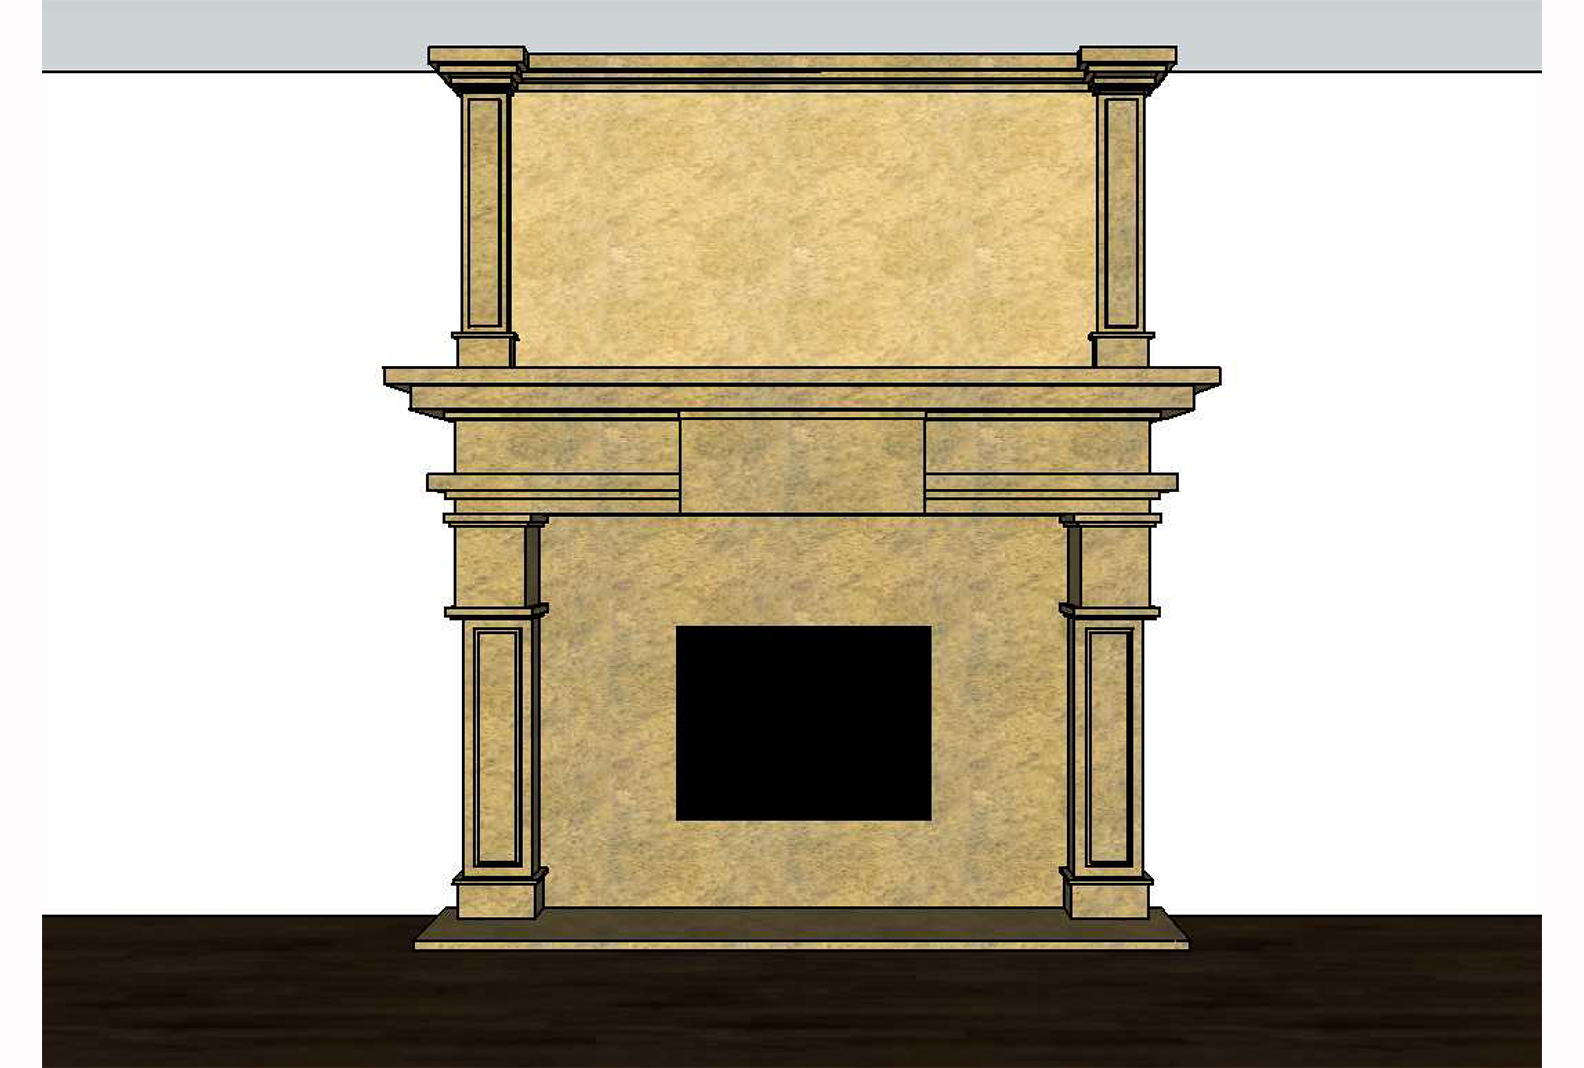 family room fireplace front edited frame.jpg